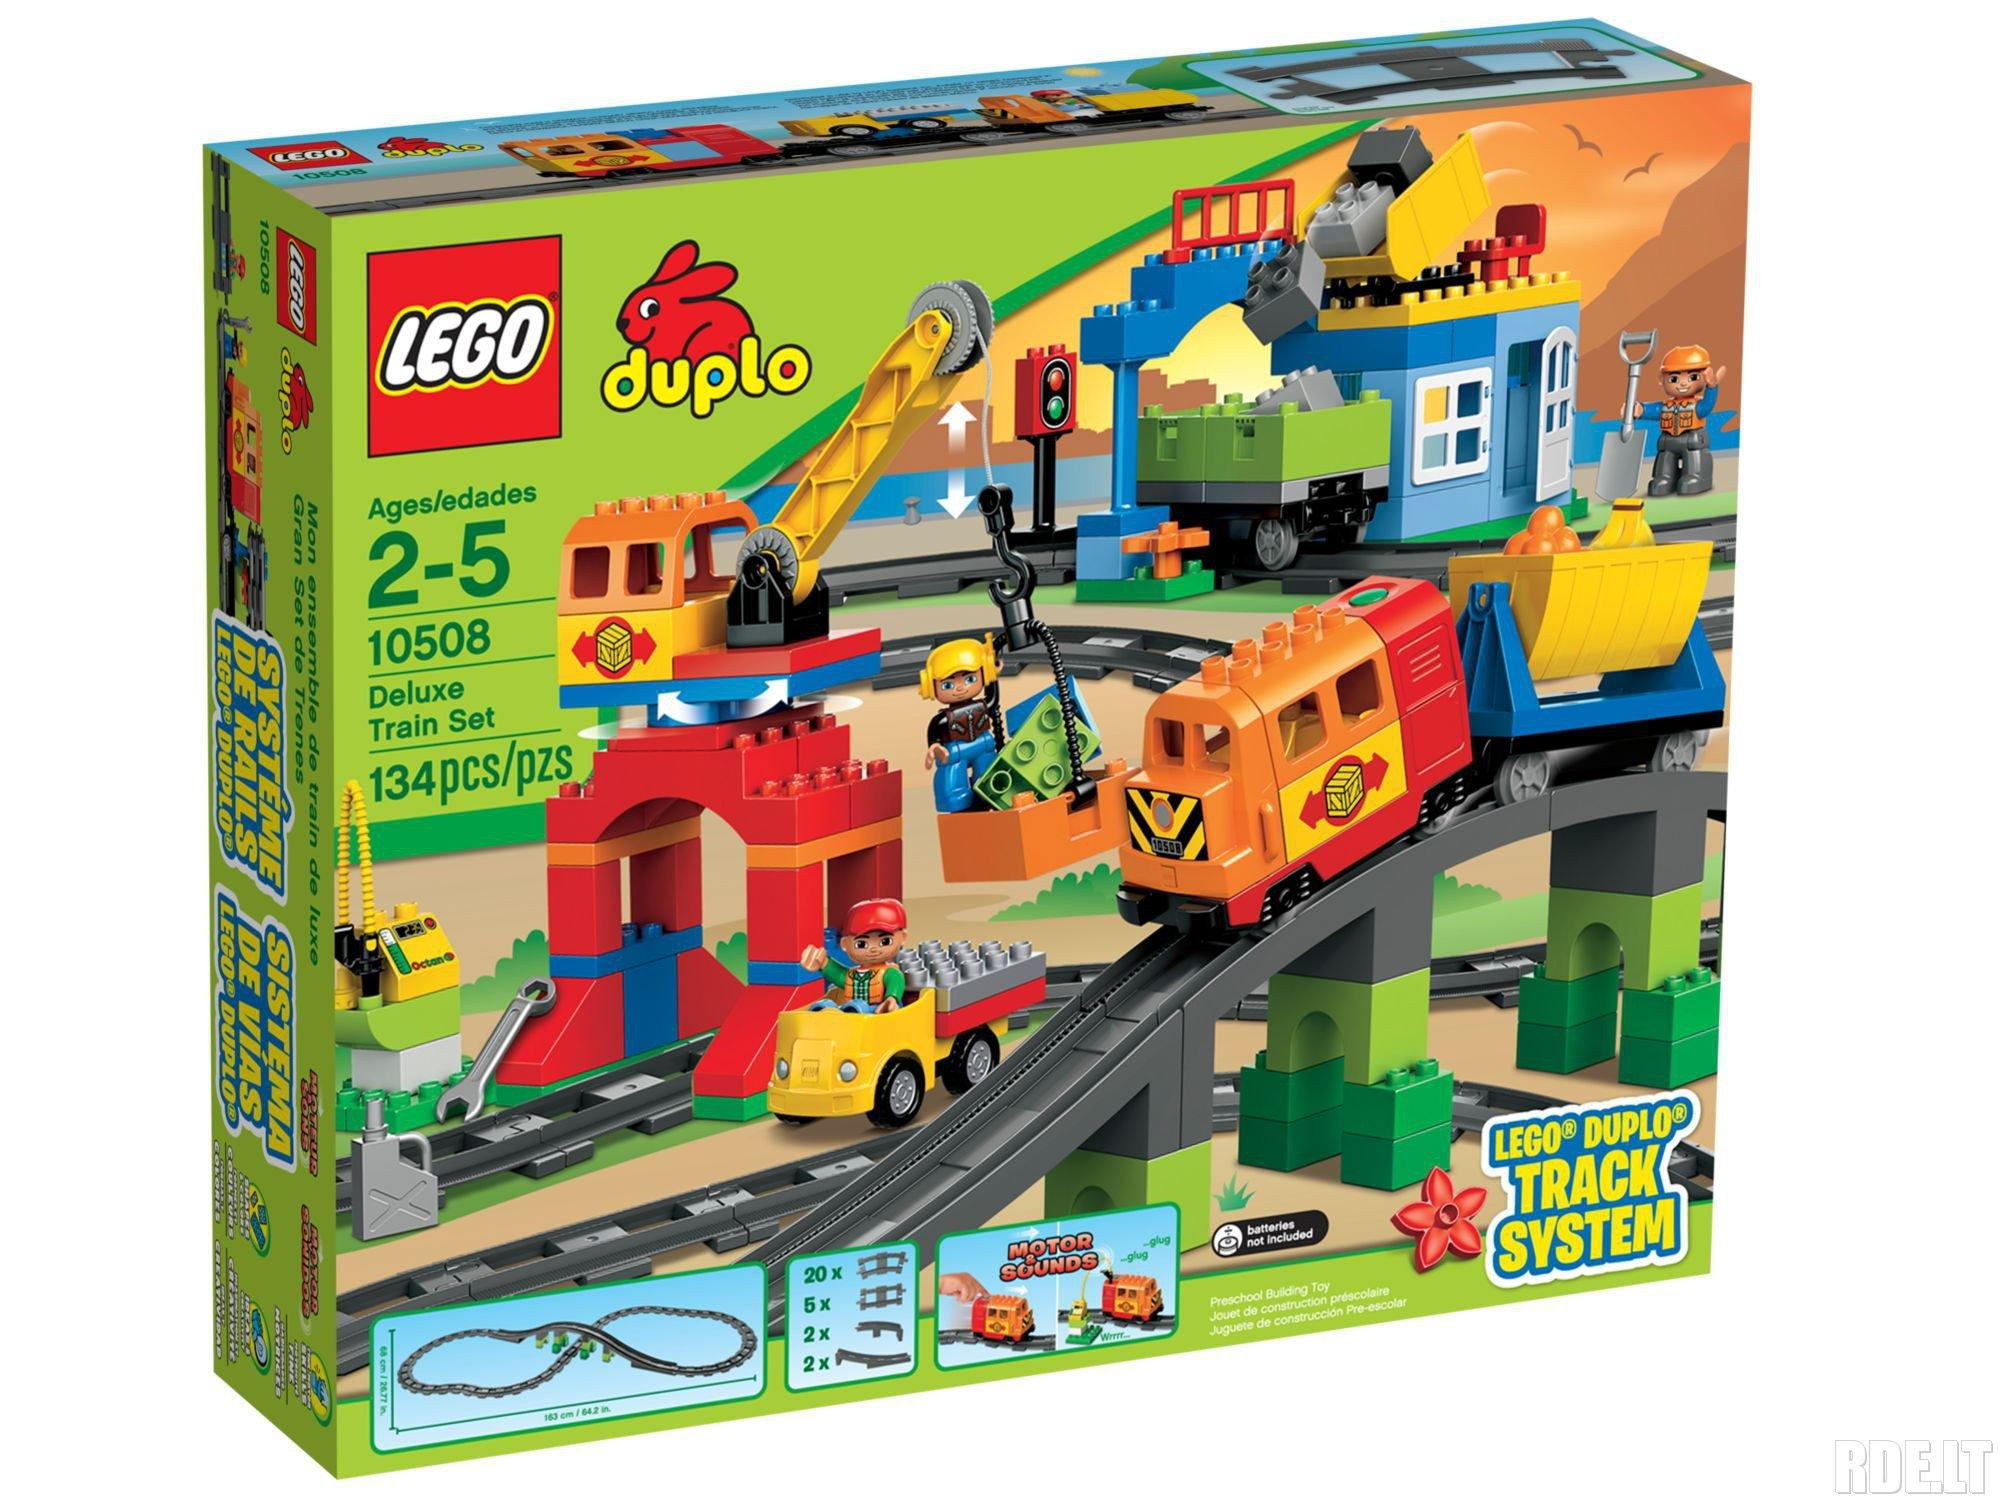 Lego Duplo Deluxe Train Set (10508)